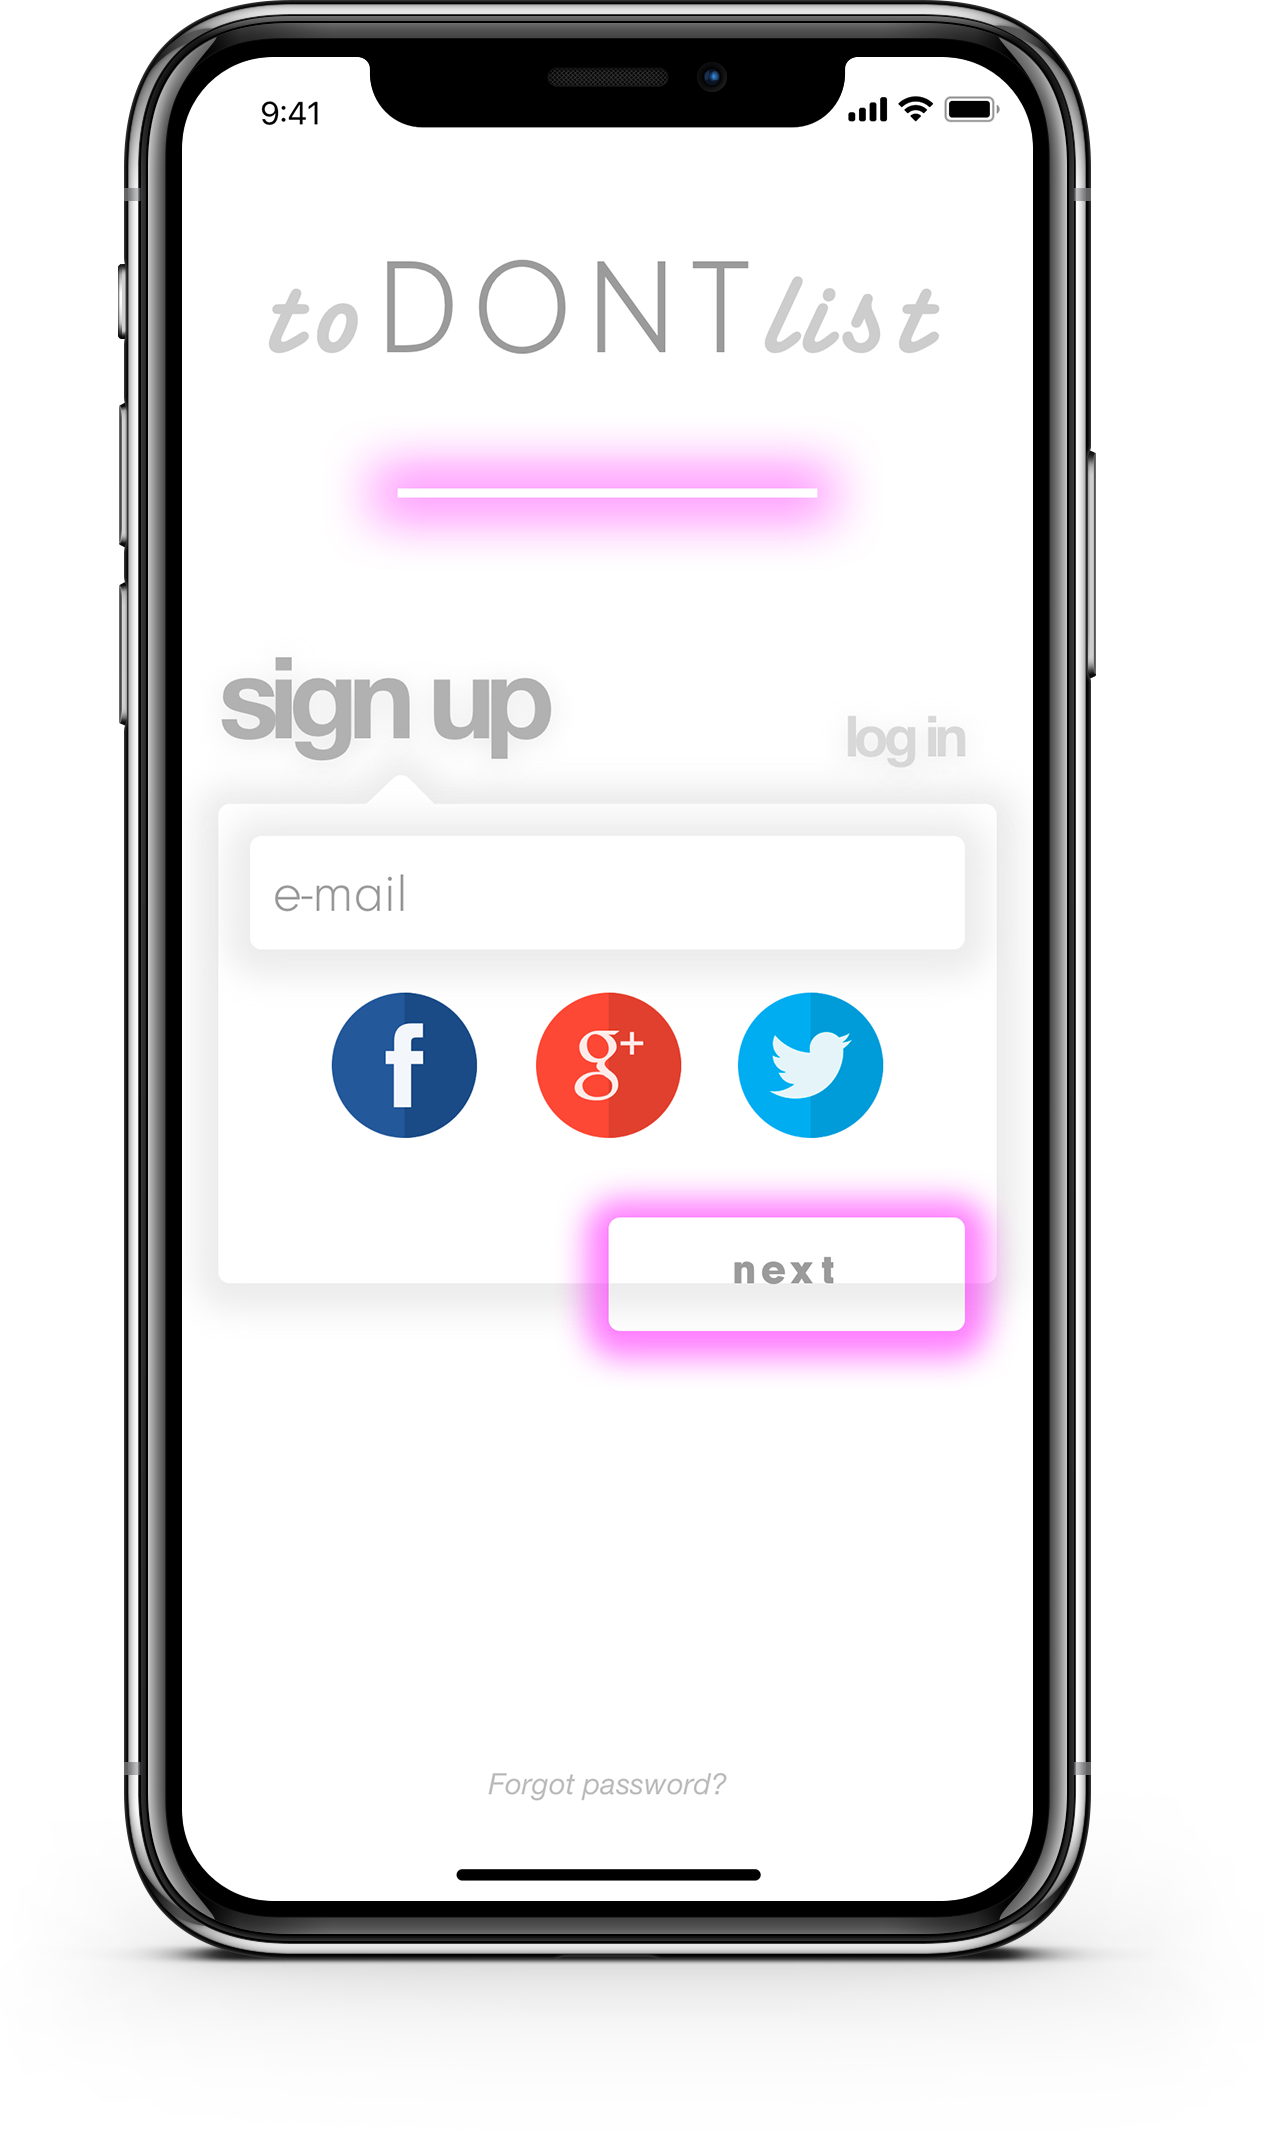 The sign-up flow (as can be seen in the animation below) is  bright and energetic . Many users abandon apps when they realize they have to sign up, but by giving multiple social media options, we hope to reduce that number.